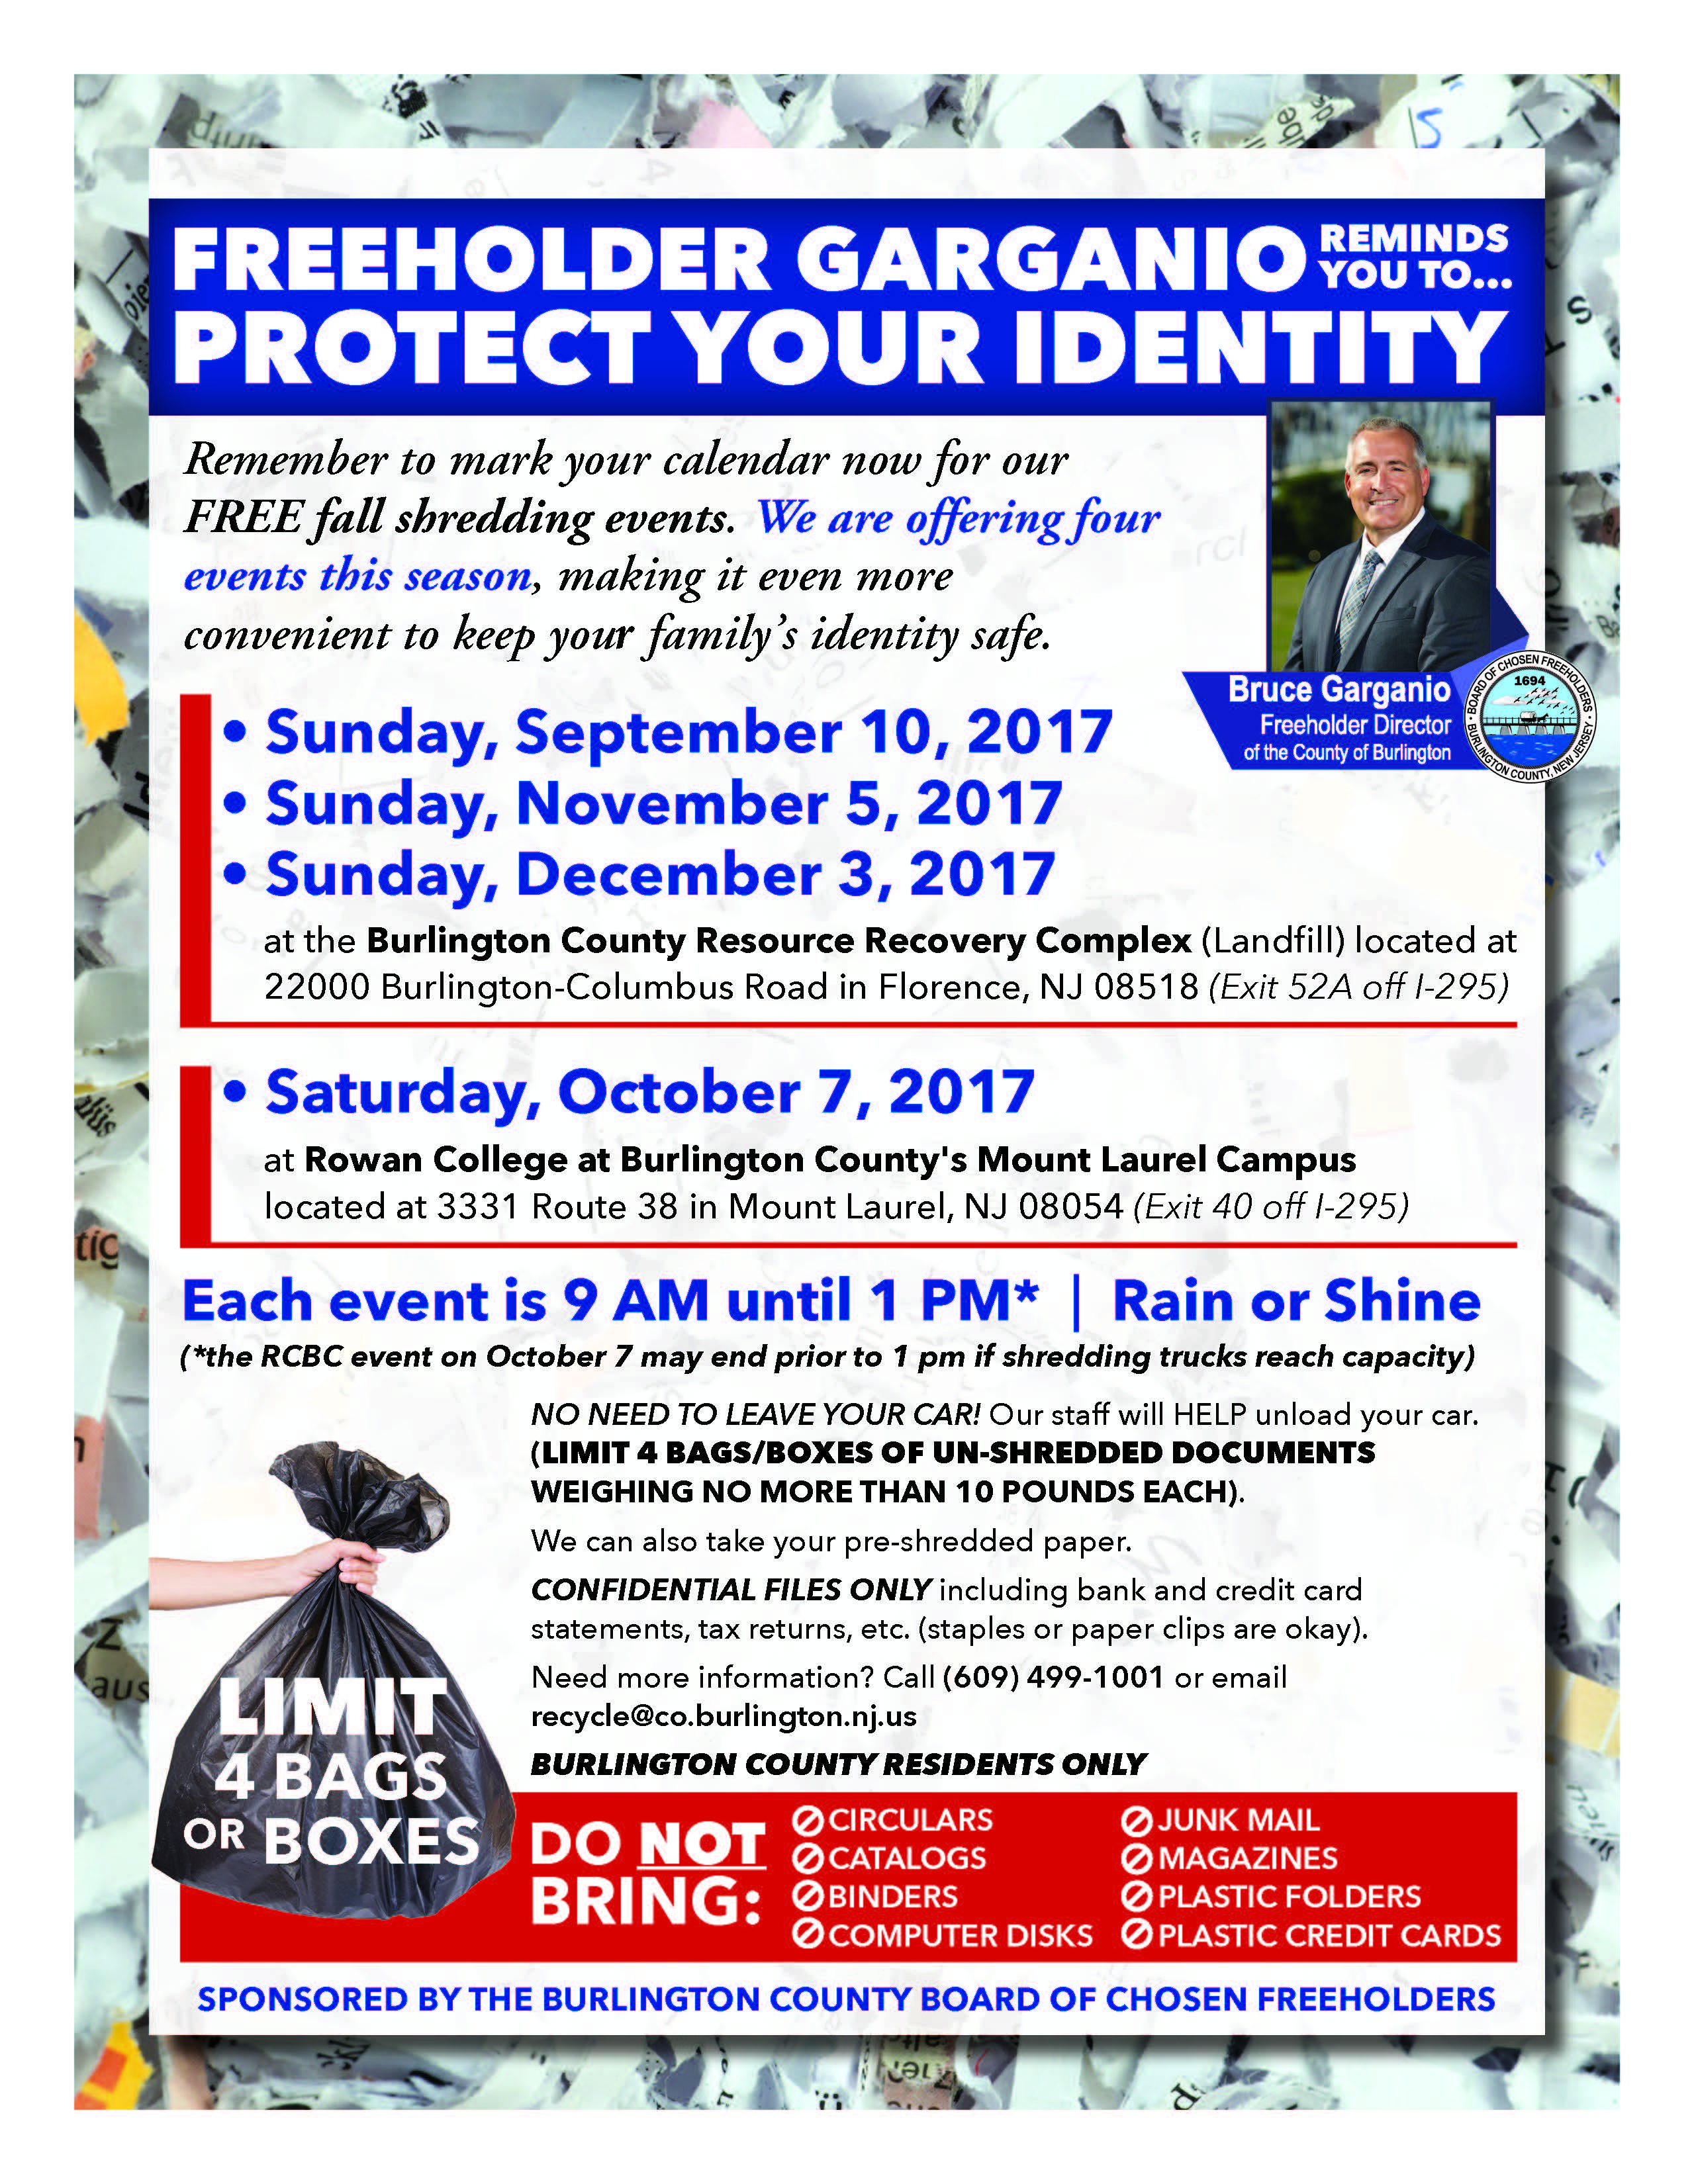 Flyer_ShredEventsFall2017REV2.jpg